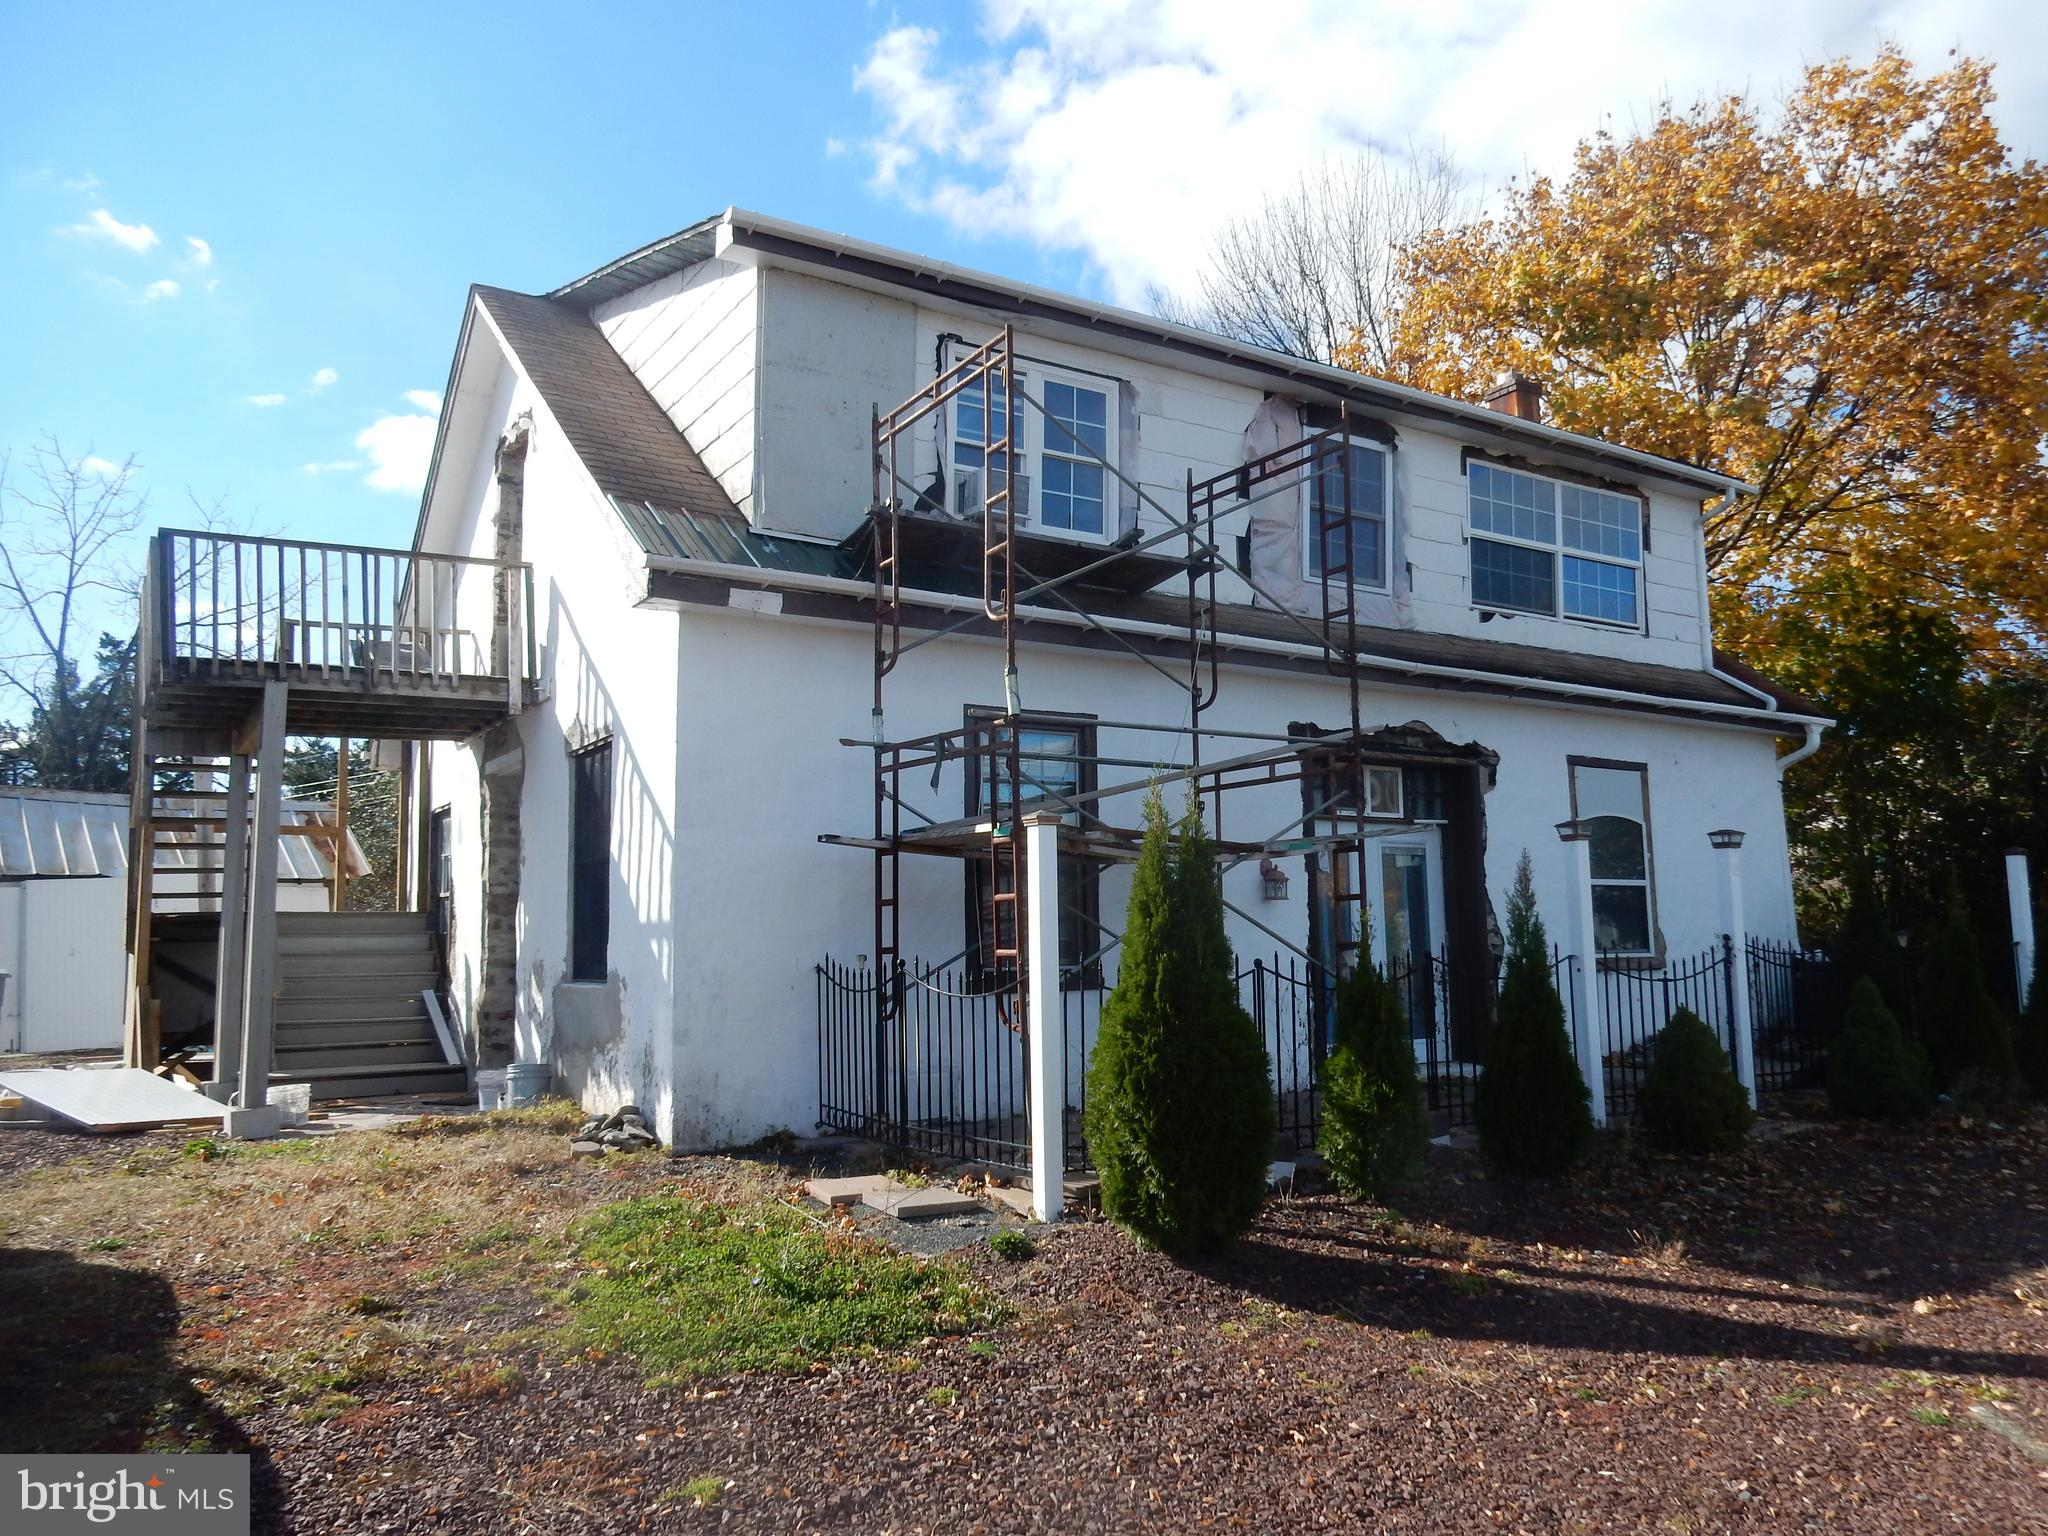 8260 EASTON ROAD, OTTSVILLE, PA 18942